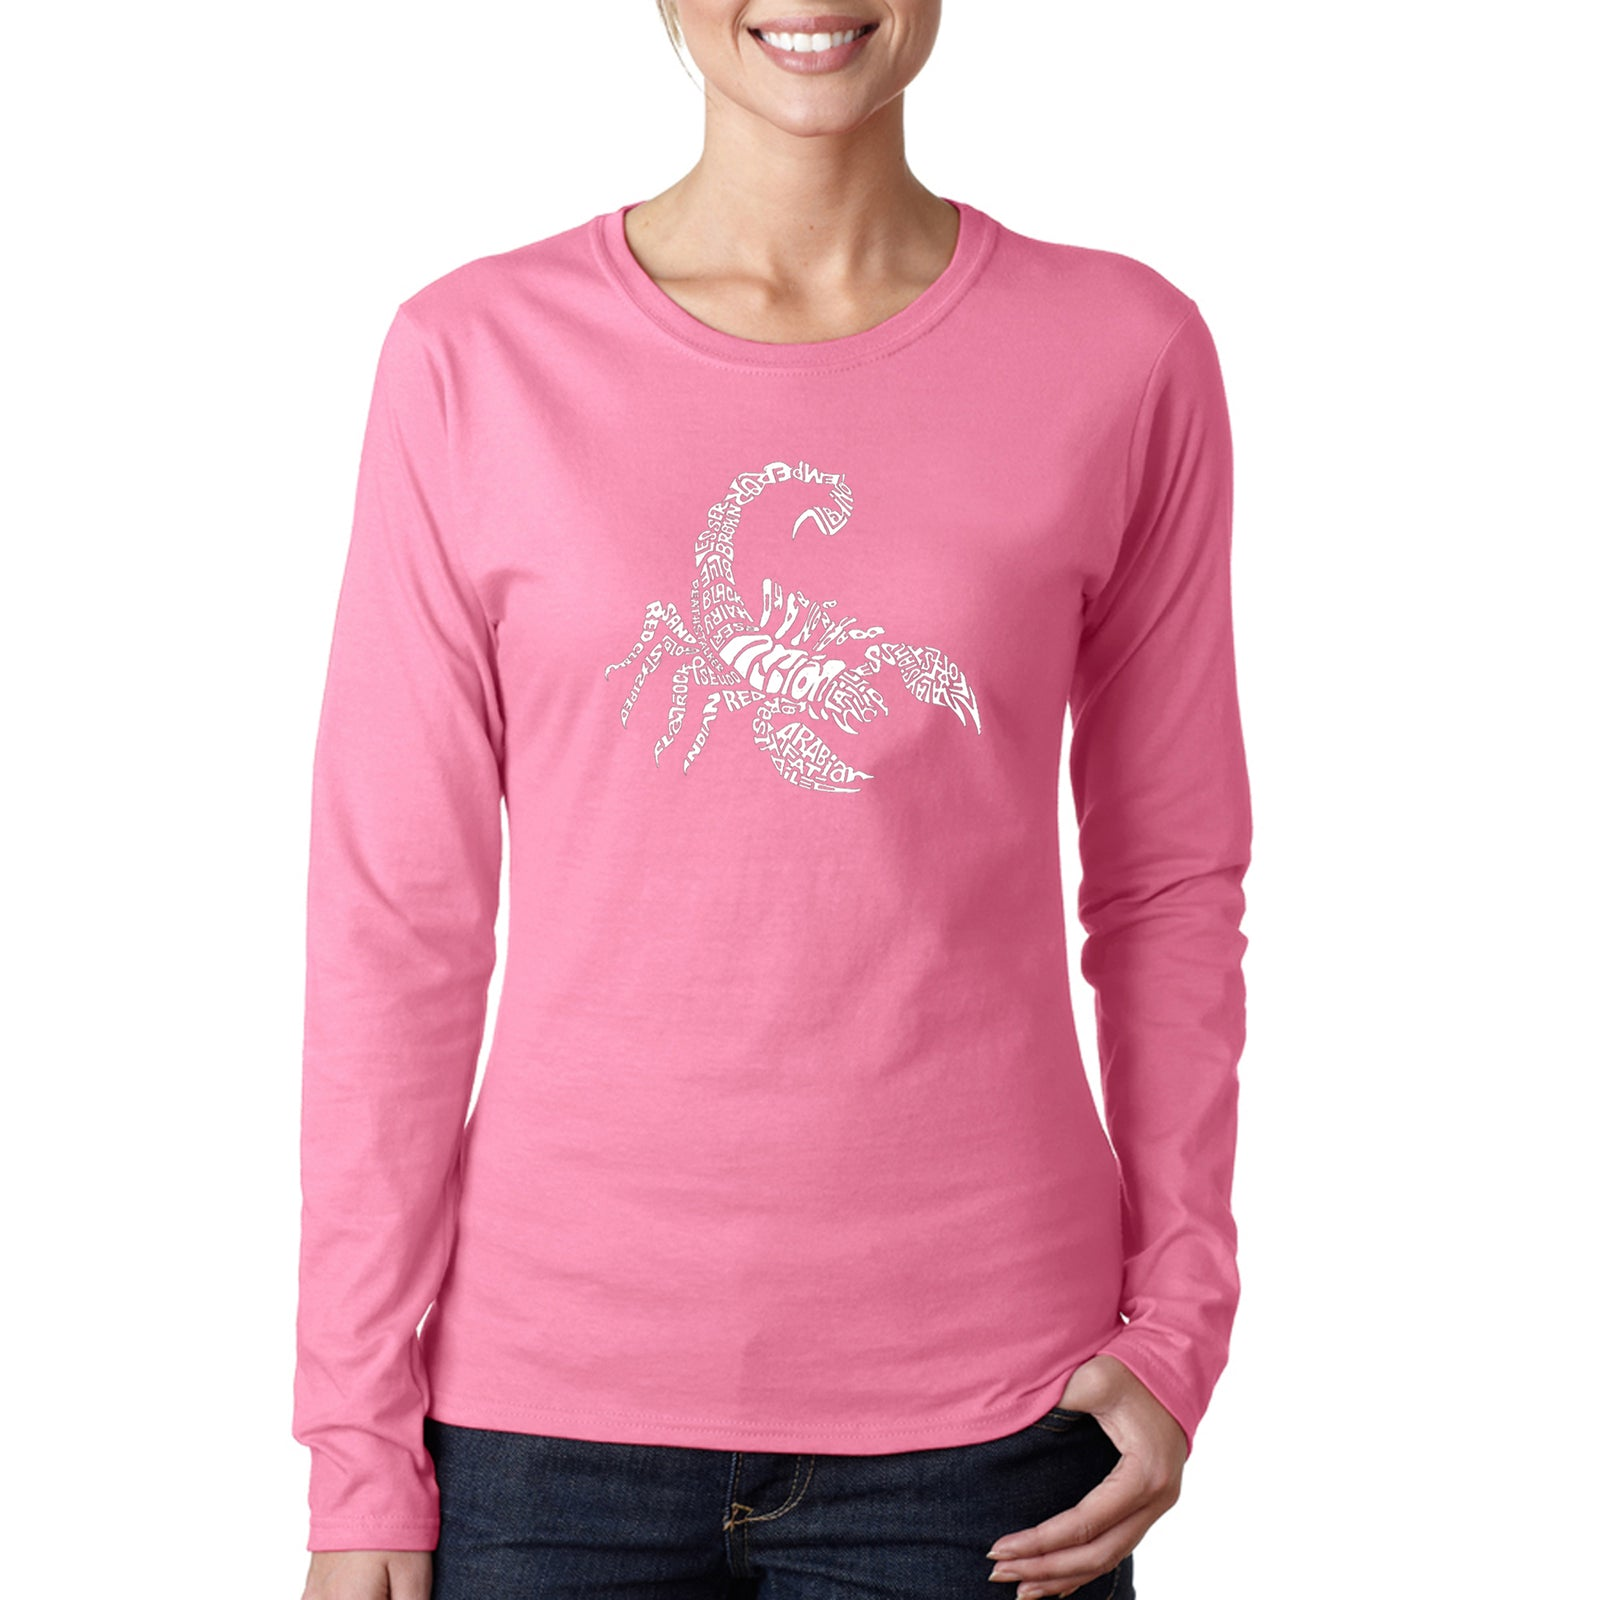 Women's Word Art Long Sleeve T-Shirt - Types of Scorpions